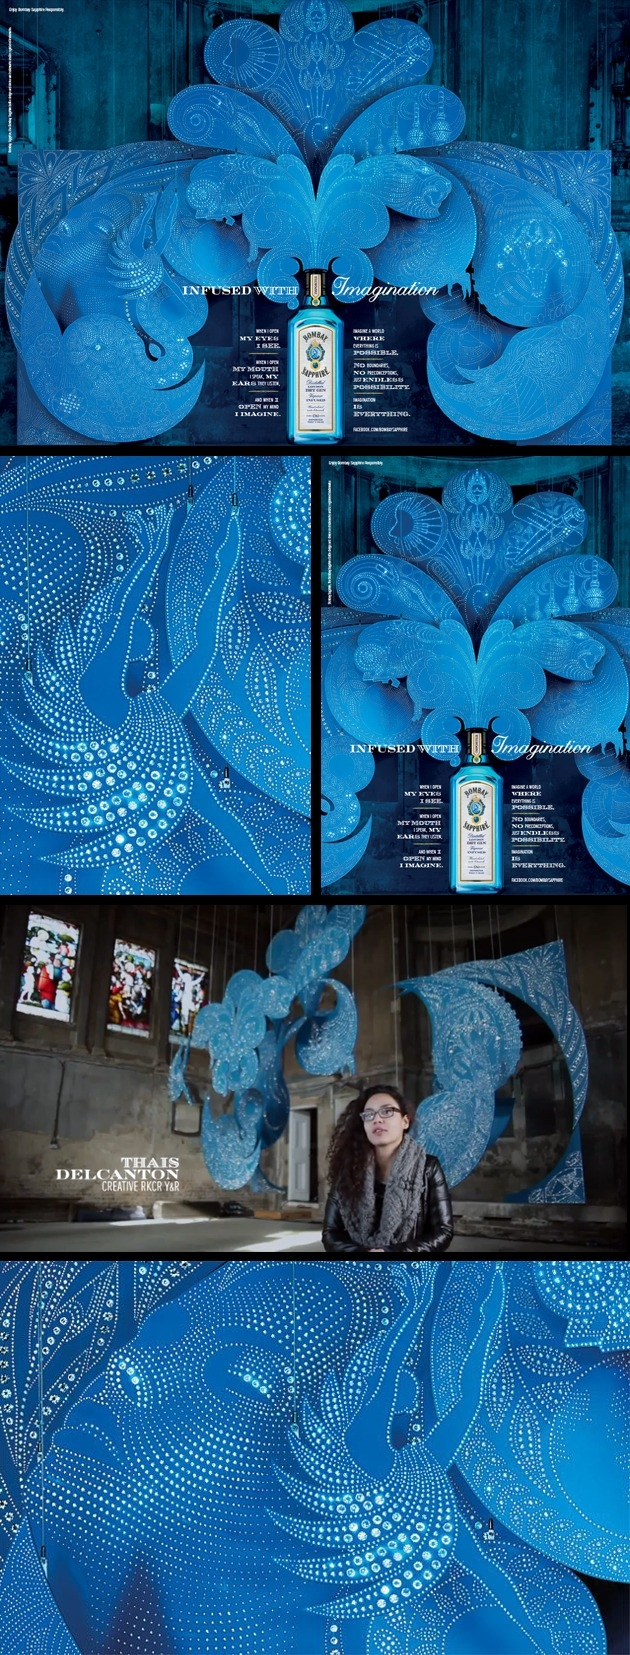 Yehrin Tong / Bombay Sapphire